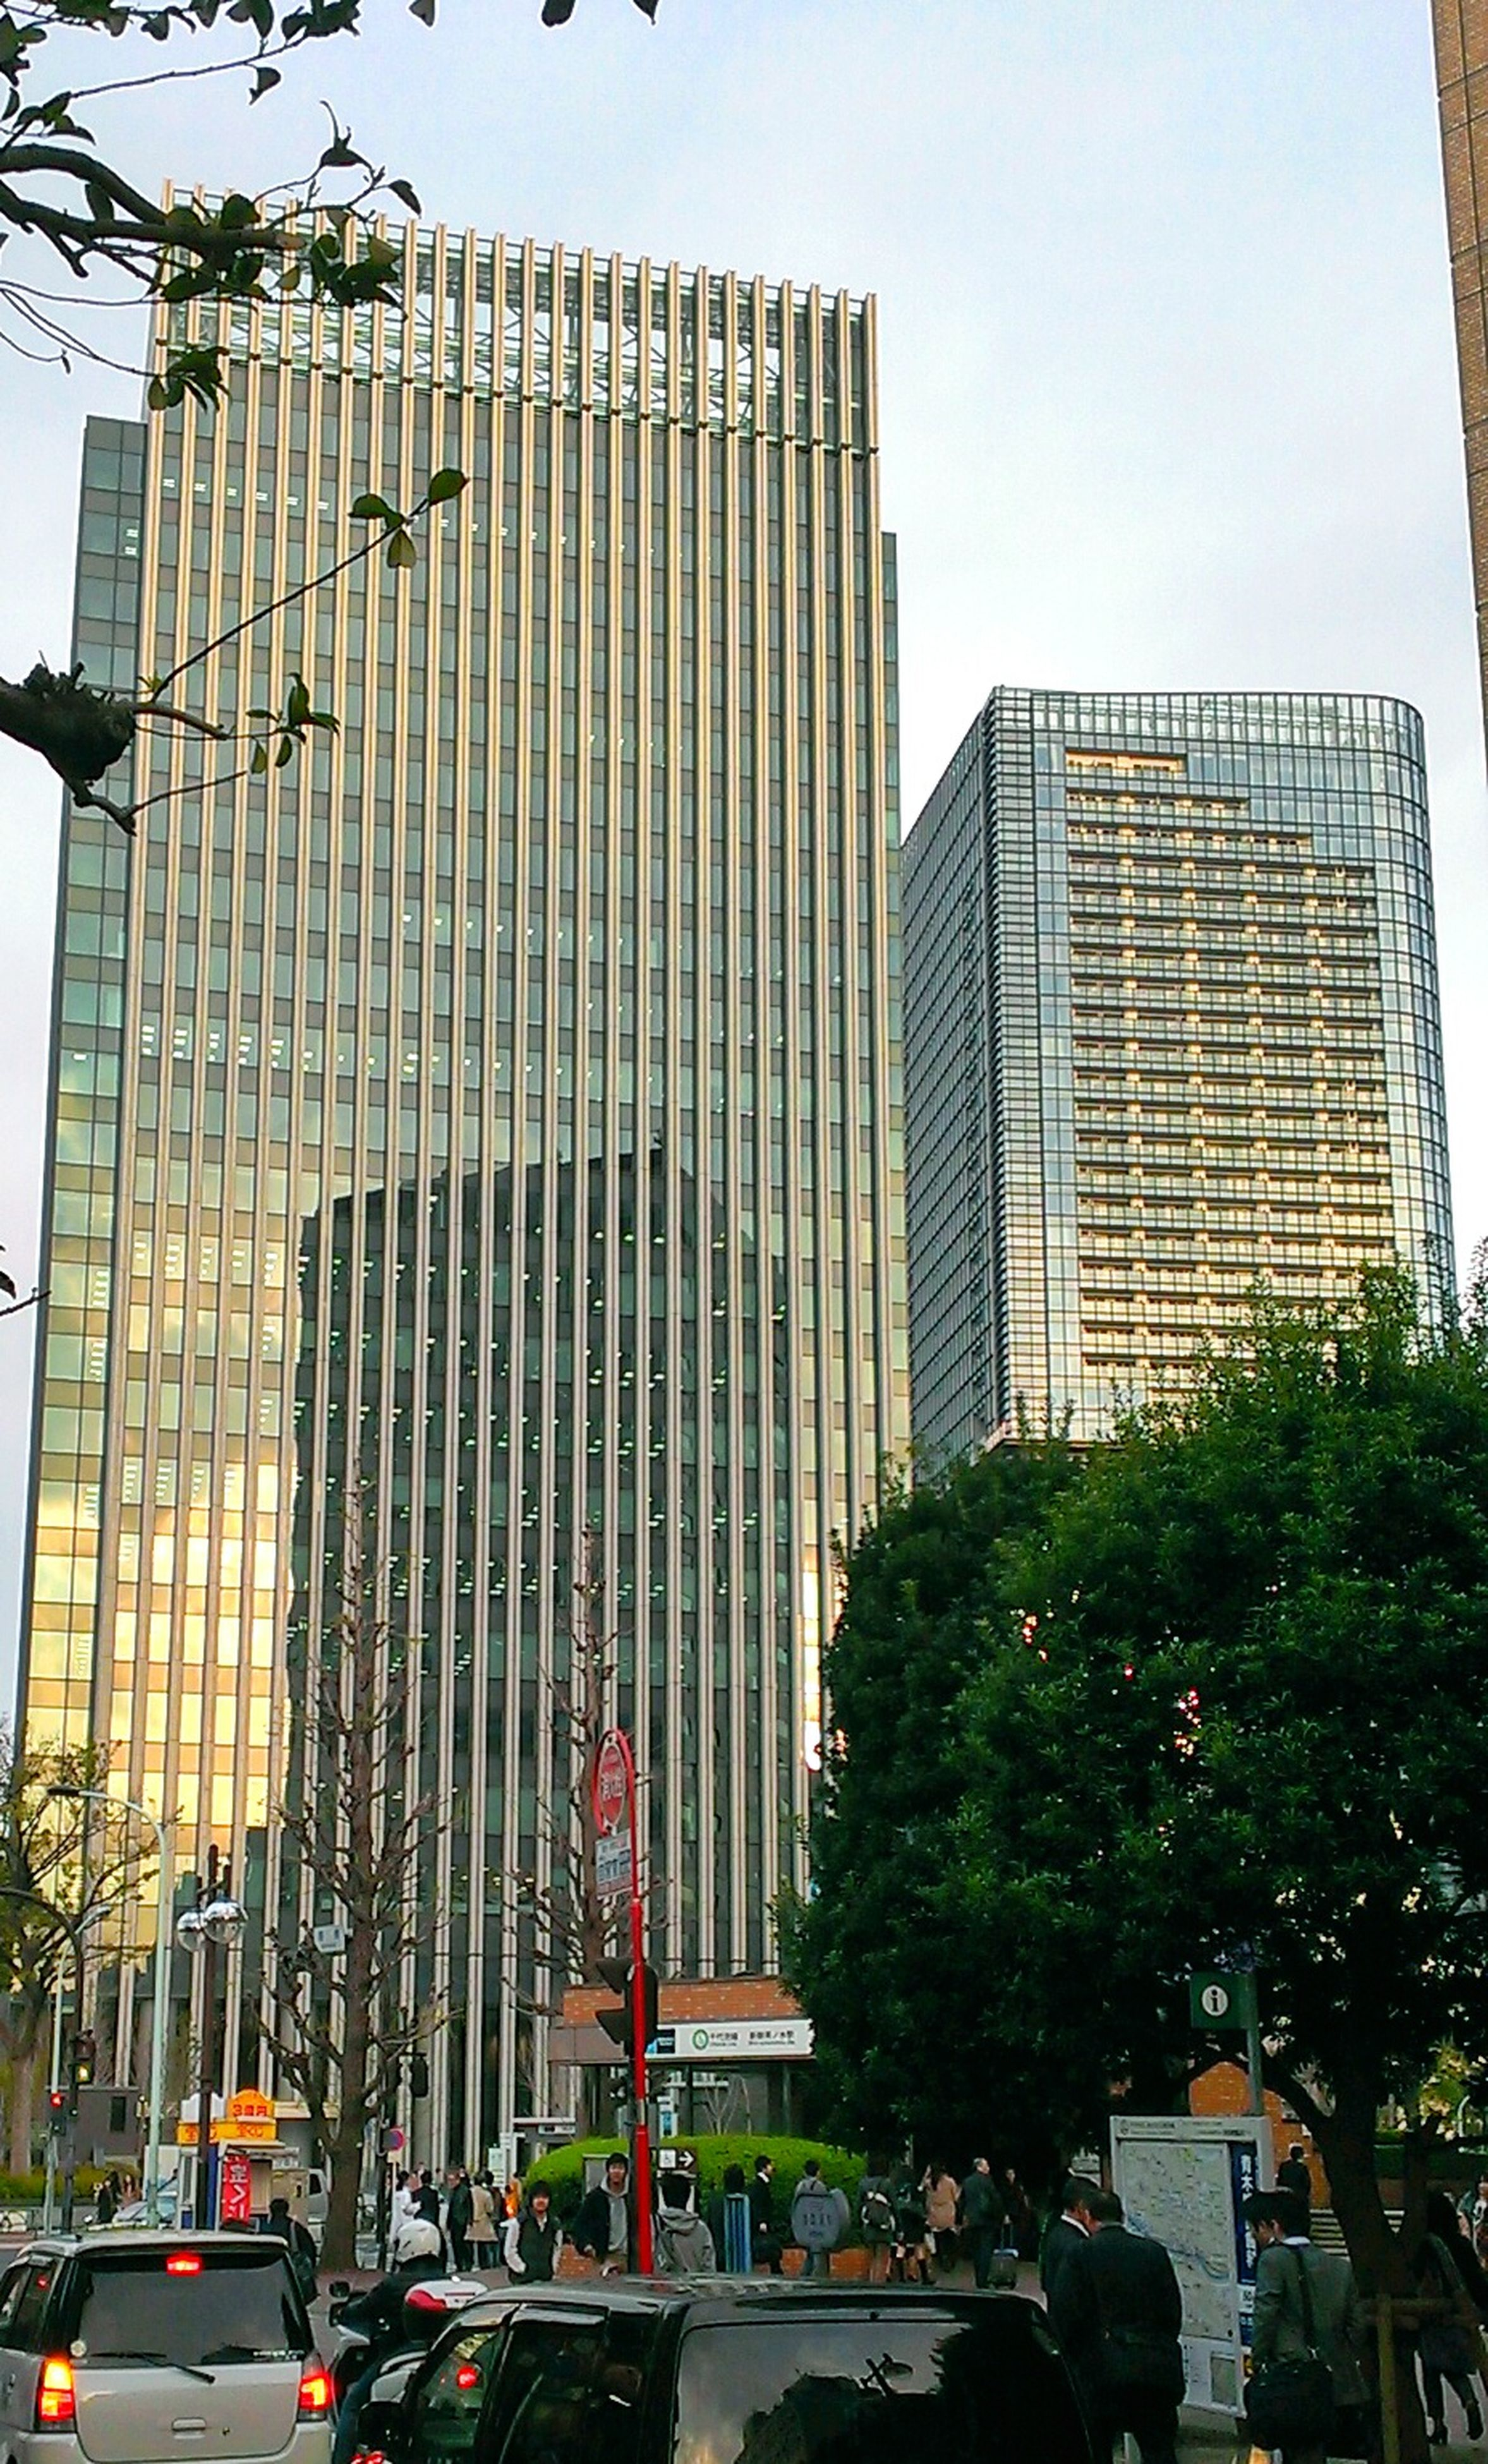 building exterior, architecture, built structure, low angle view, city, modern, office building, building, car, tall - high, land vehicle, tree, skyscraper, transportation, sky, city life, street, clear sky, tower, day